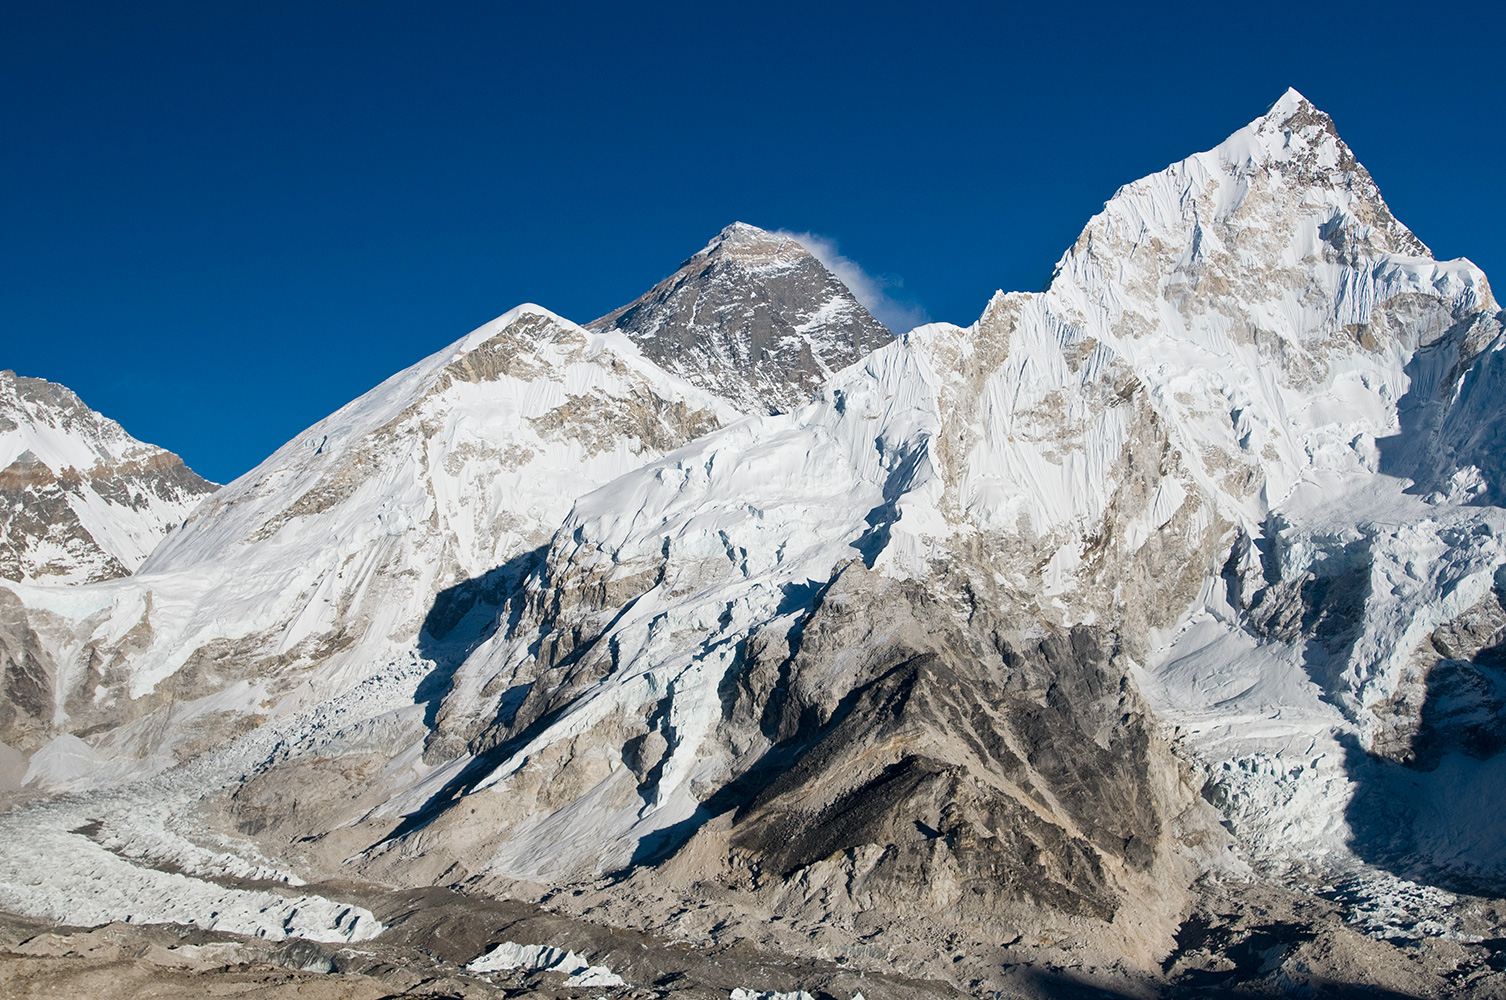 From Kala Pattar (5550m) above Gorak Shep on the Khumbu glacierNikon D300, 17-35mm